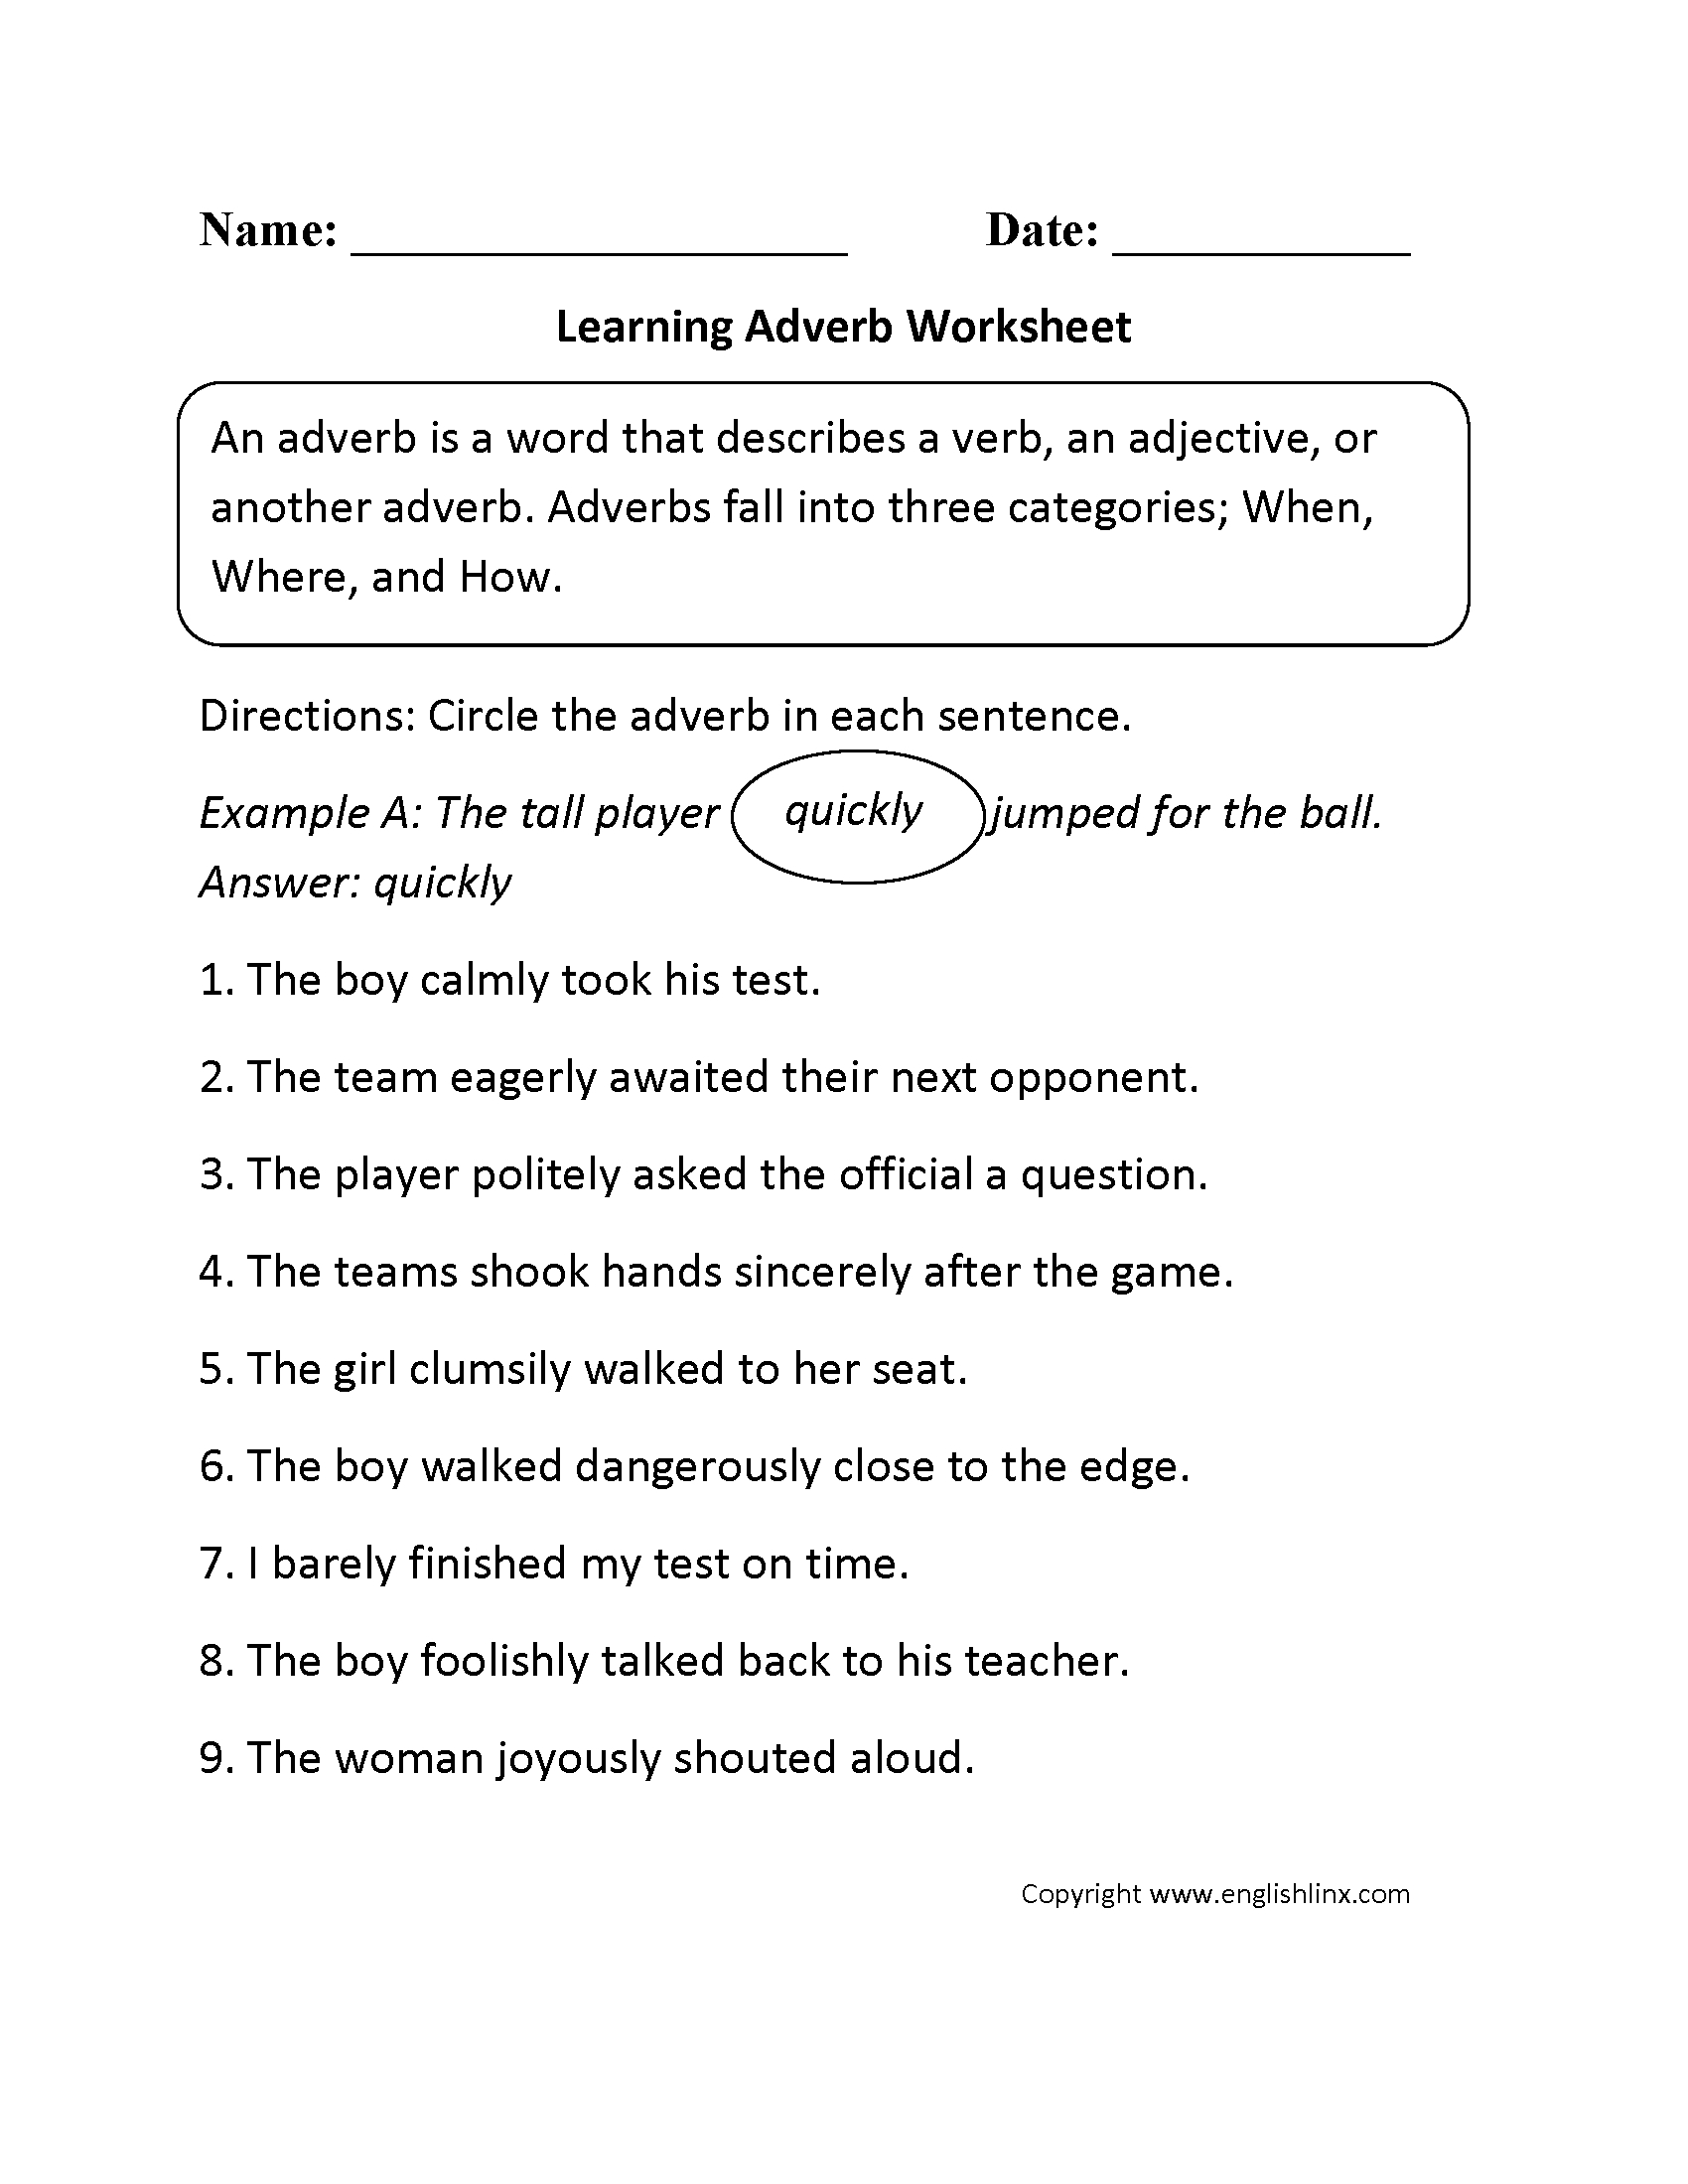 Grammar Worksheets | Parts Of Speech Worksheets - Free Printable | Free Printable Parts Of Speech Worksheets